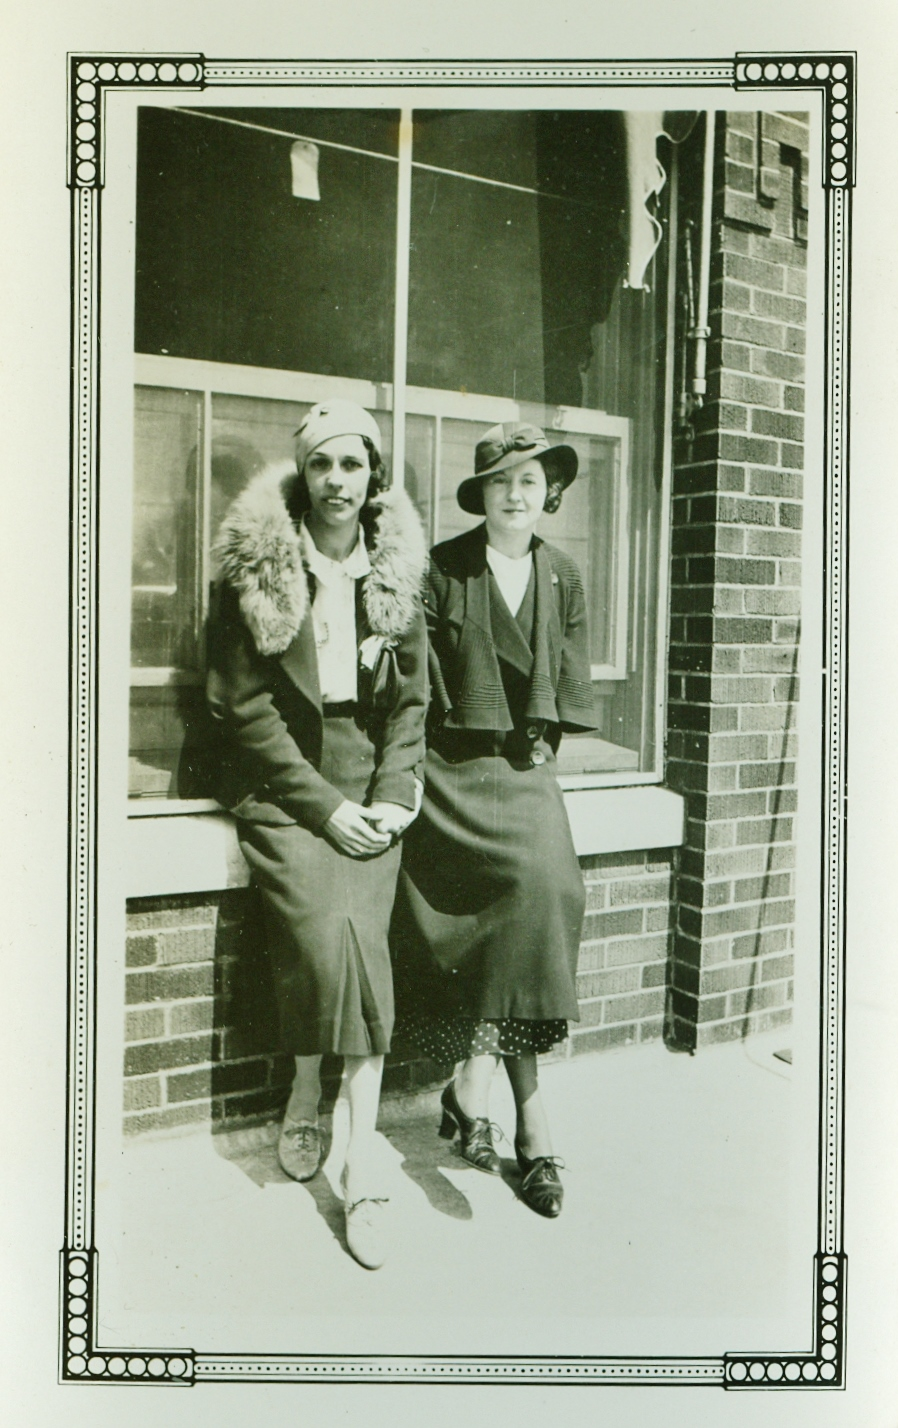 Helen Gaffney Jones Mantle & Maudie Dennis , May 1934